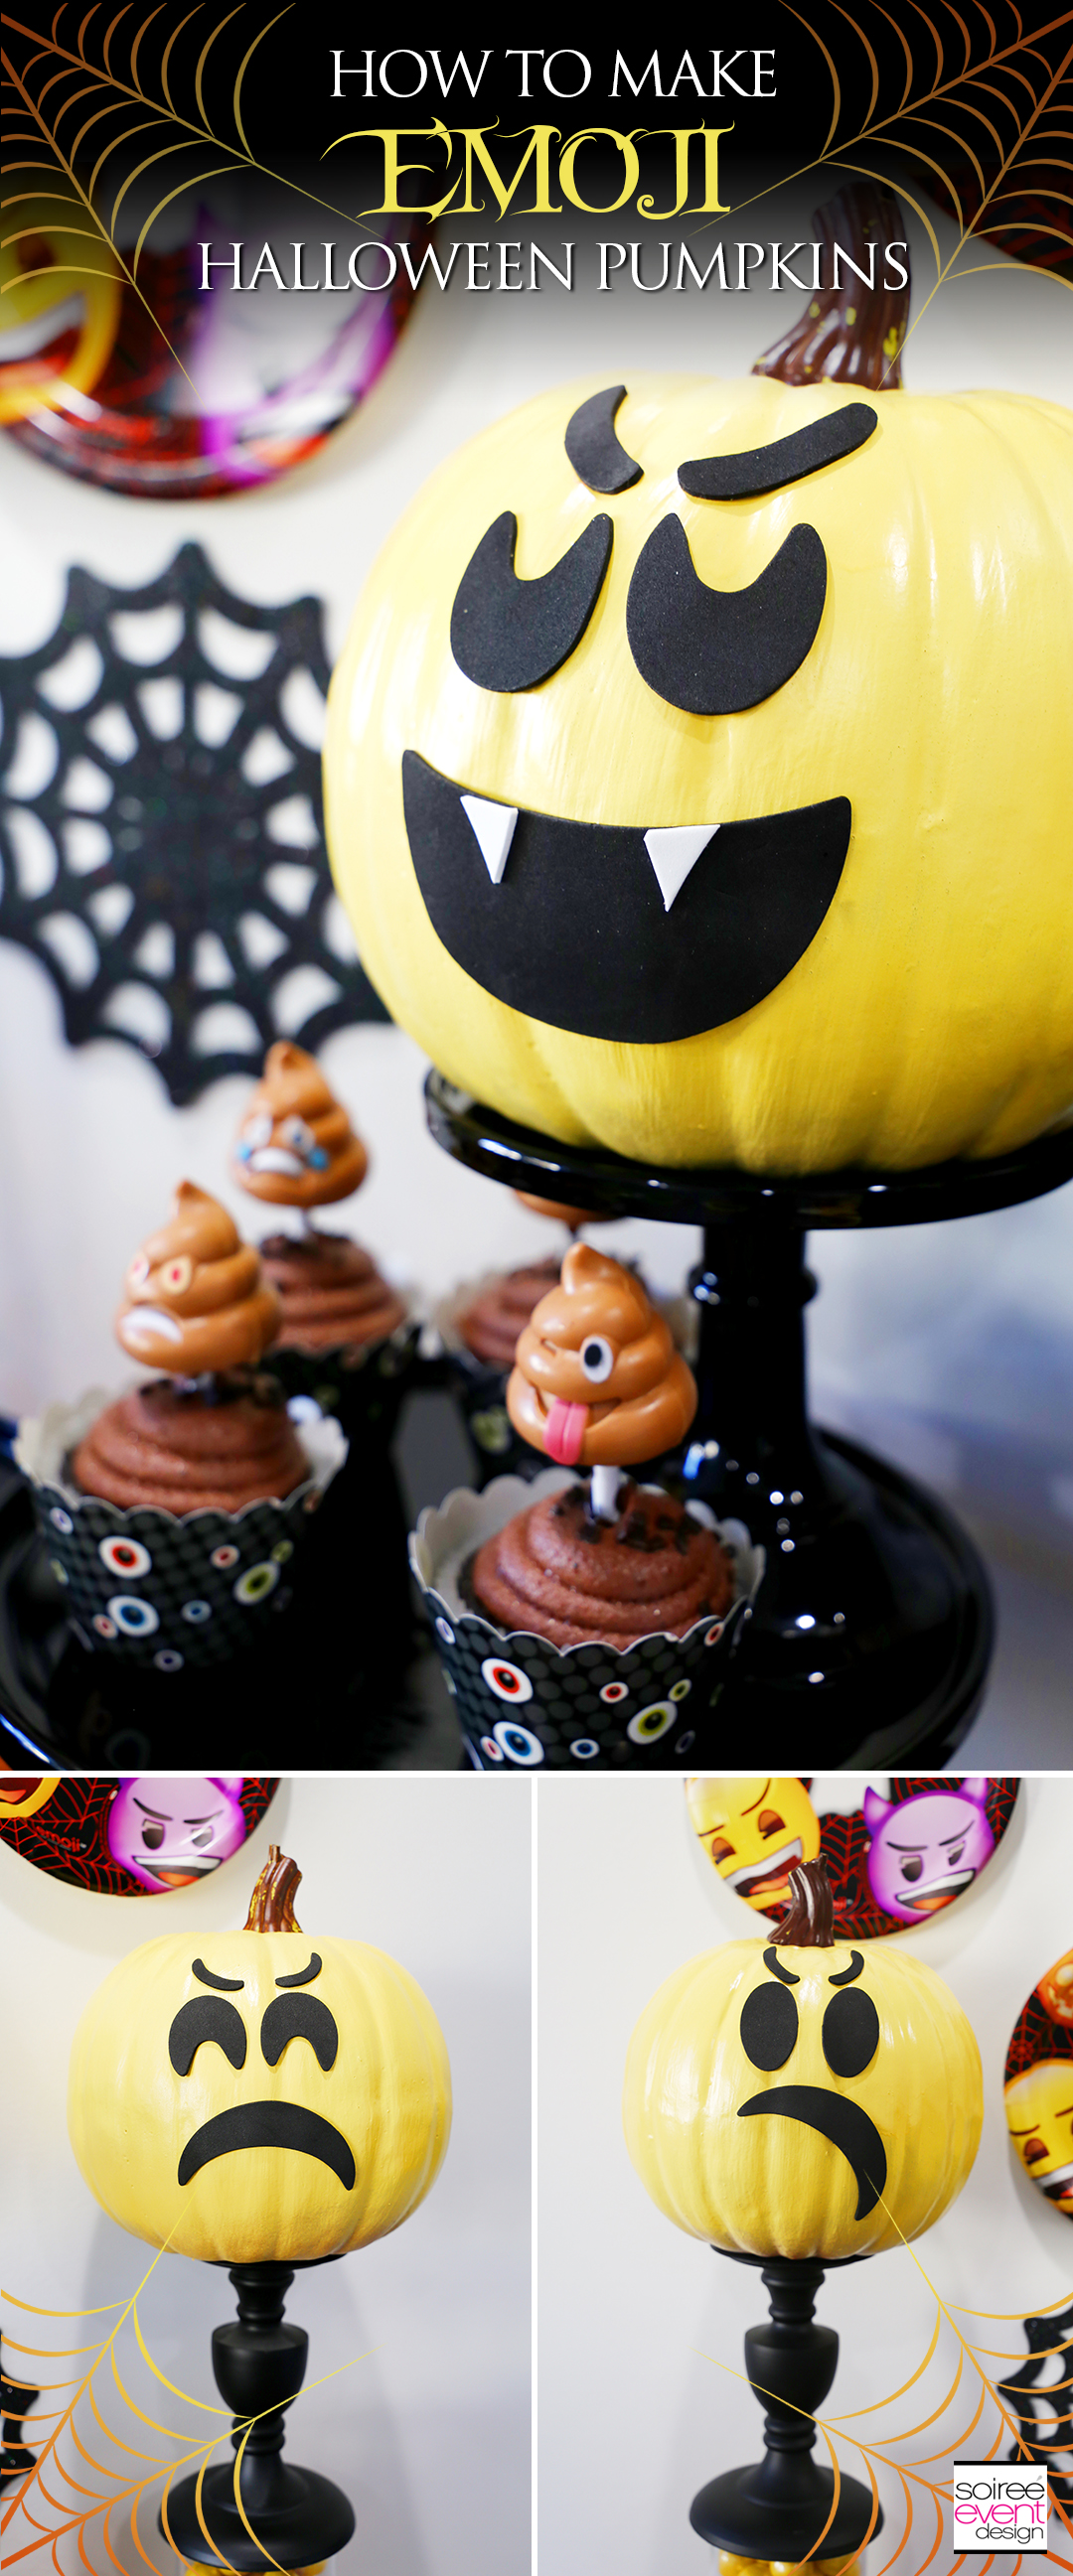 Emoji Halloween Party Ideas - DIY Emoji Pumpkins